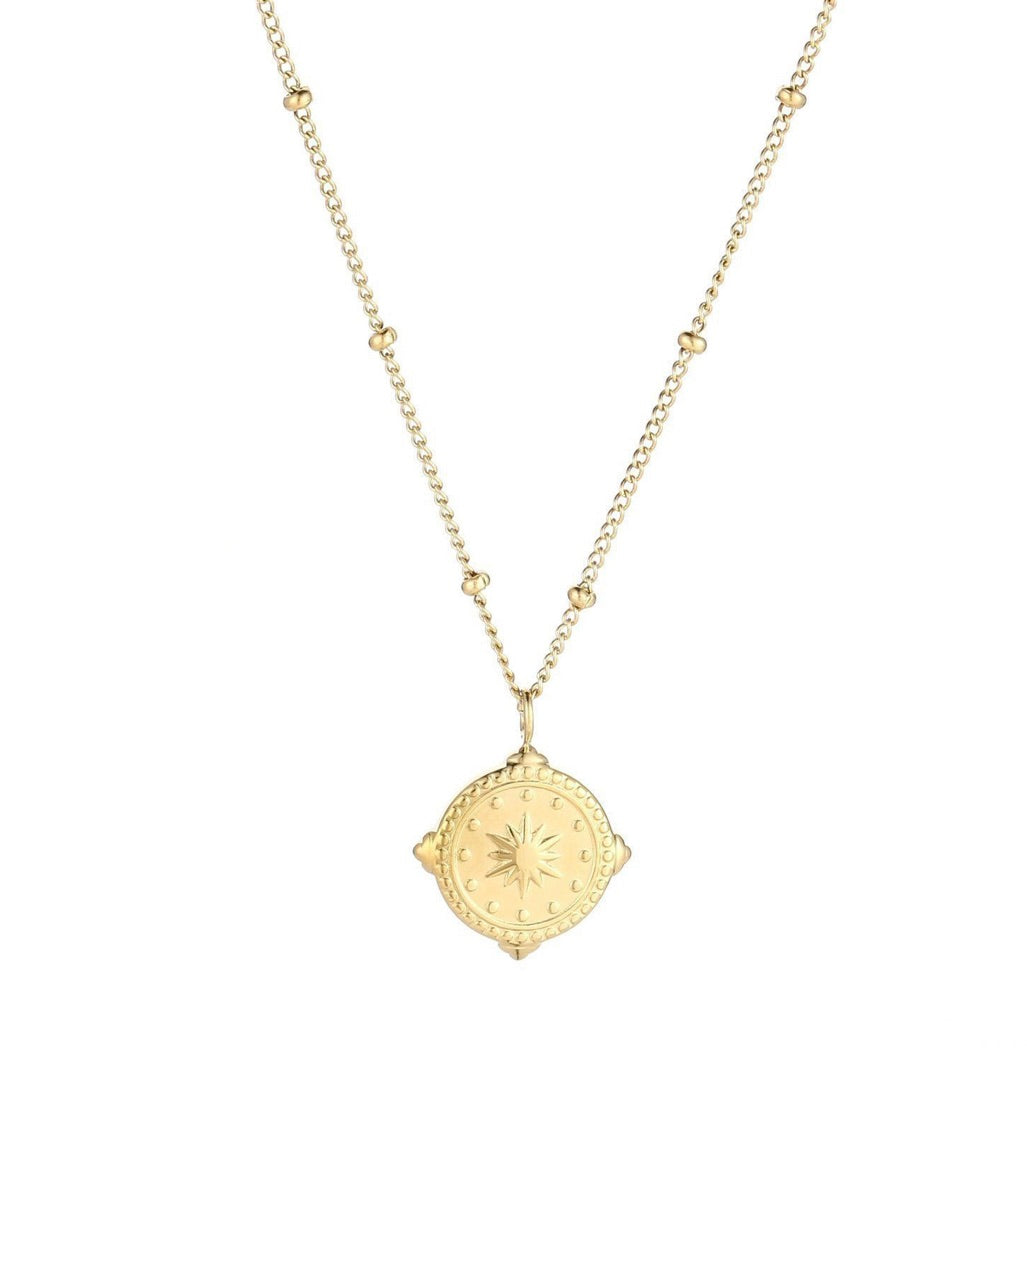 KETTING 'TRAVEL THE WORLD' GOUD